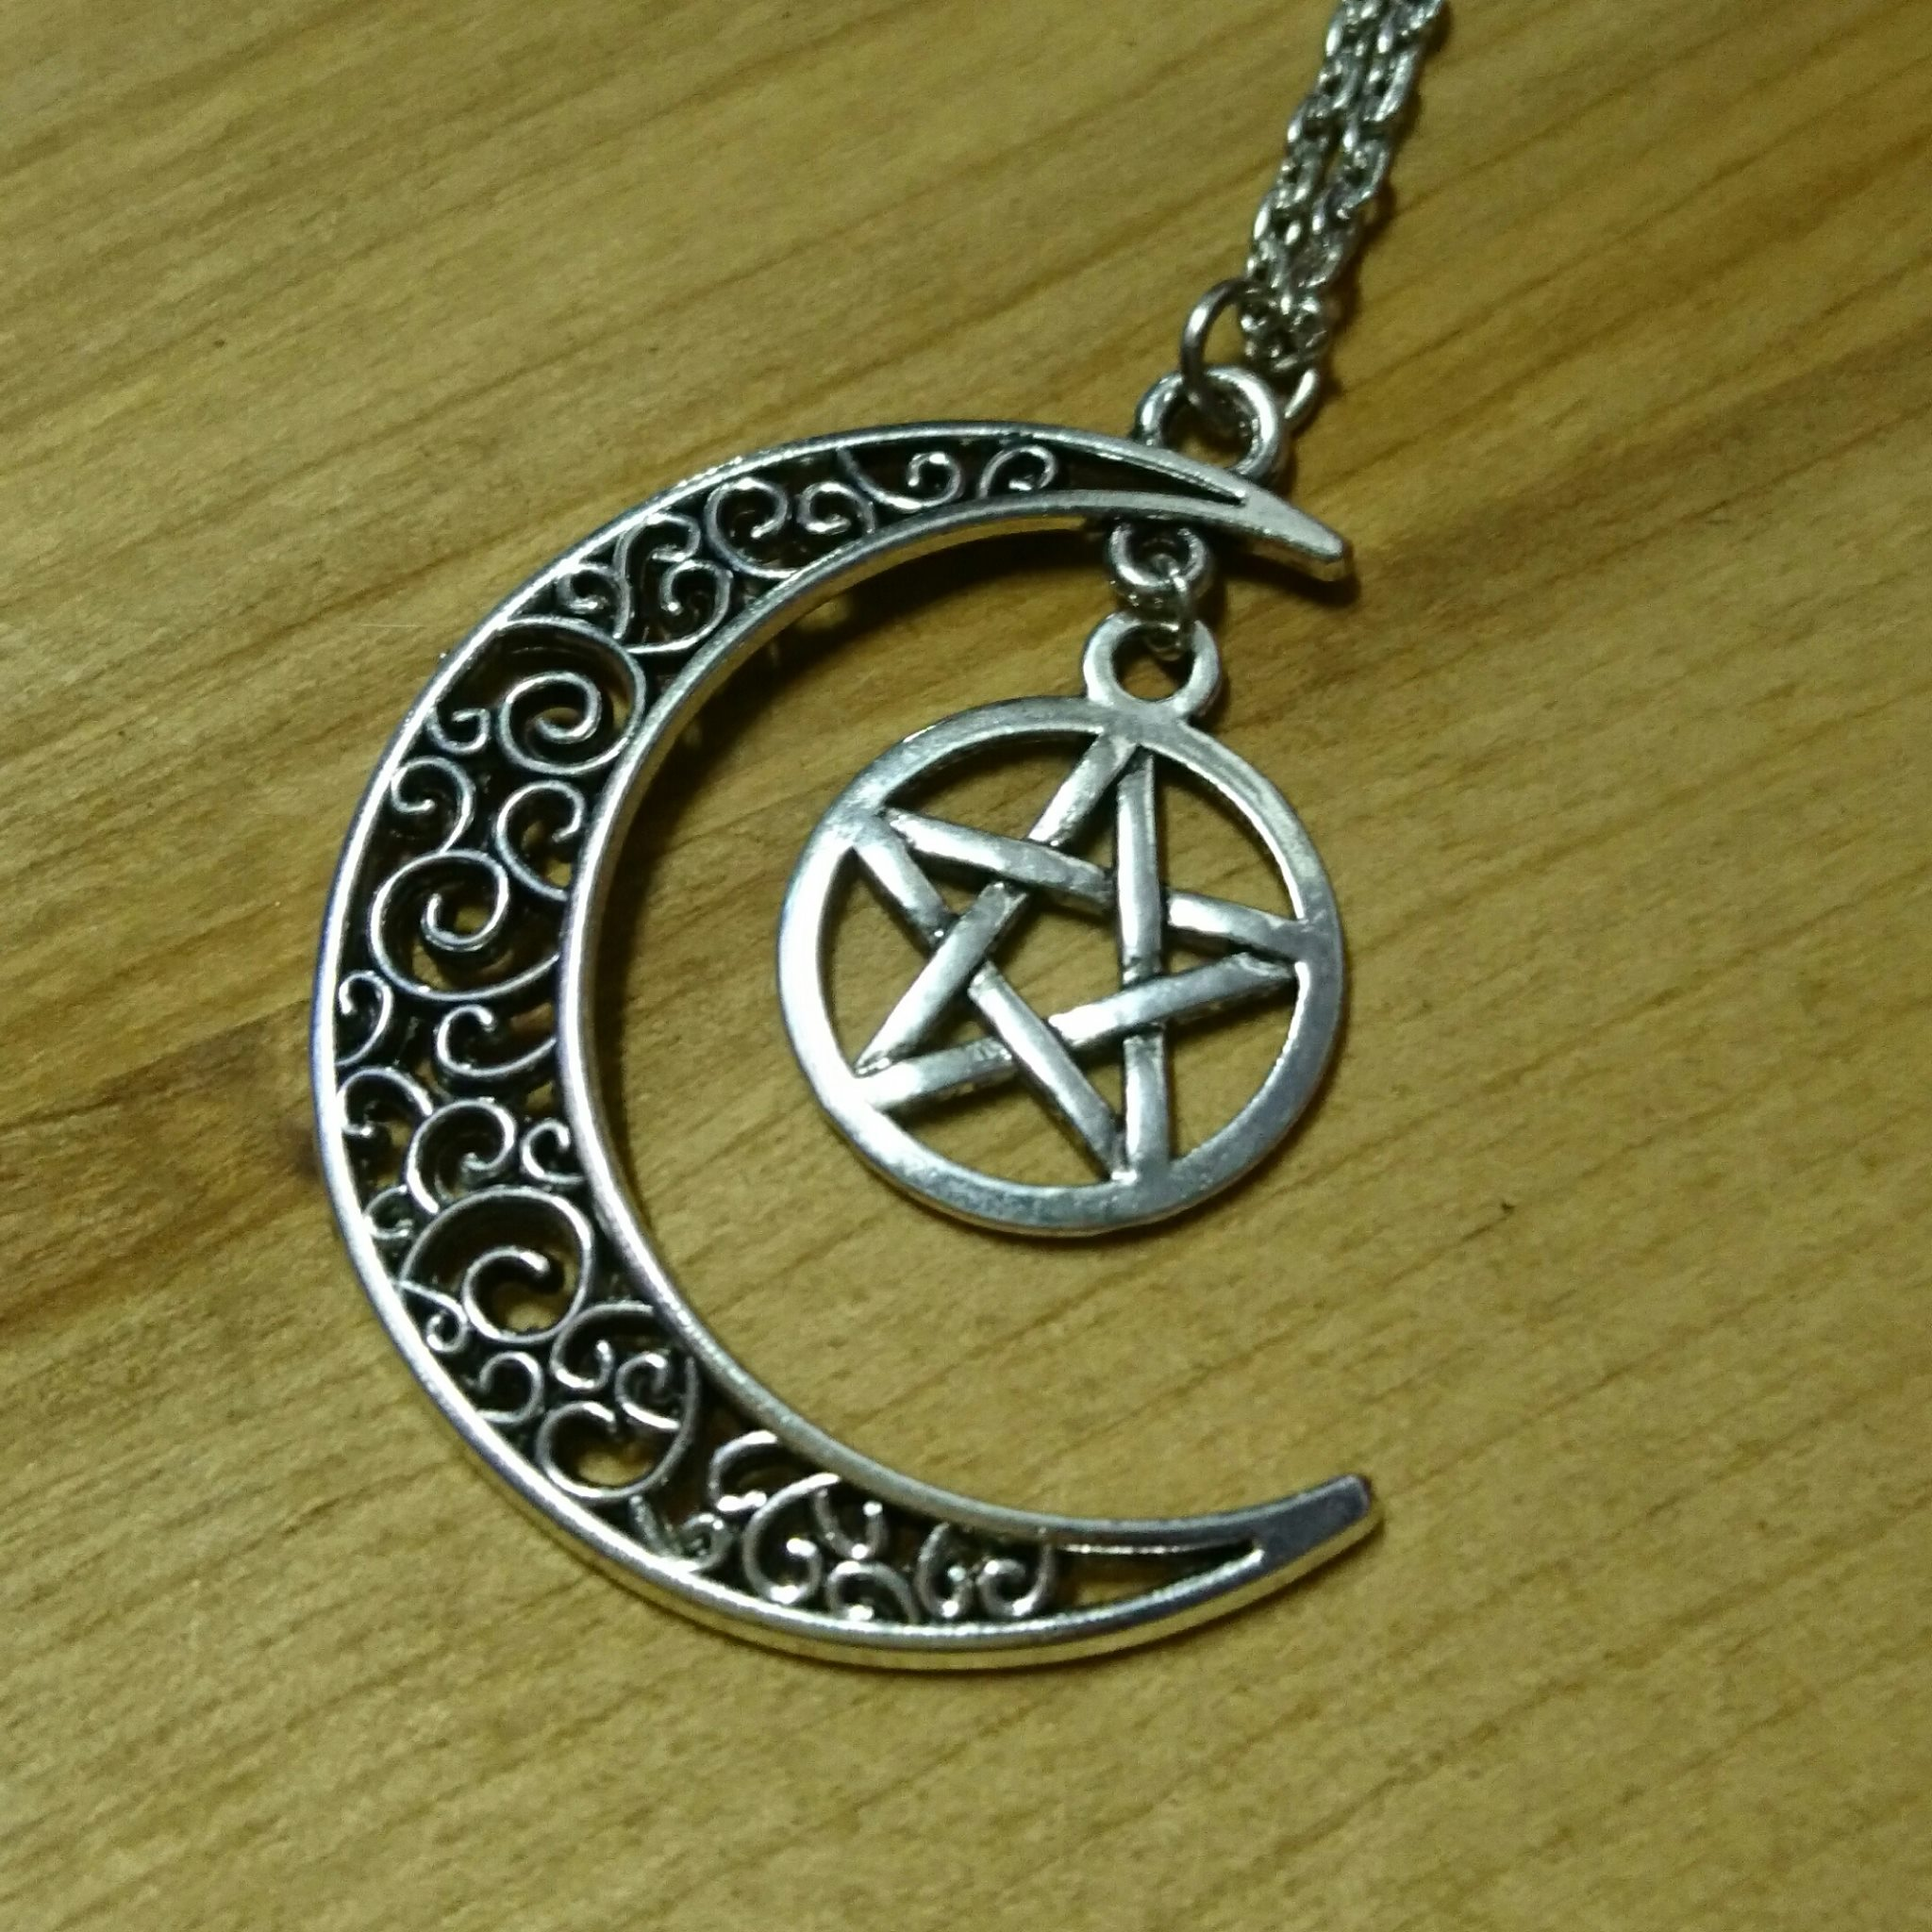 Ayame Designs pentacle moon necklace